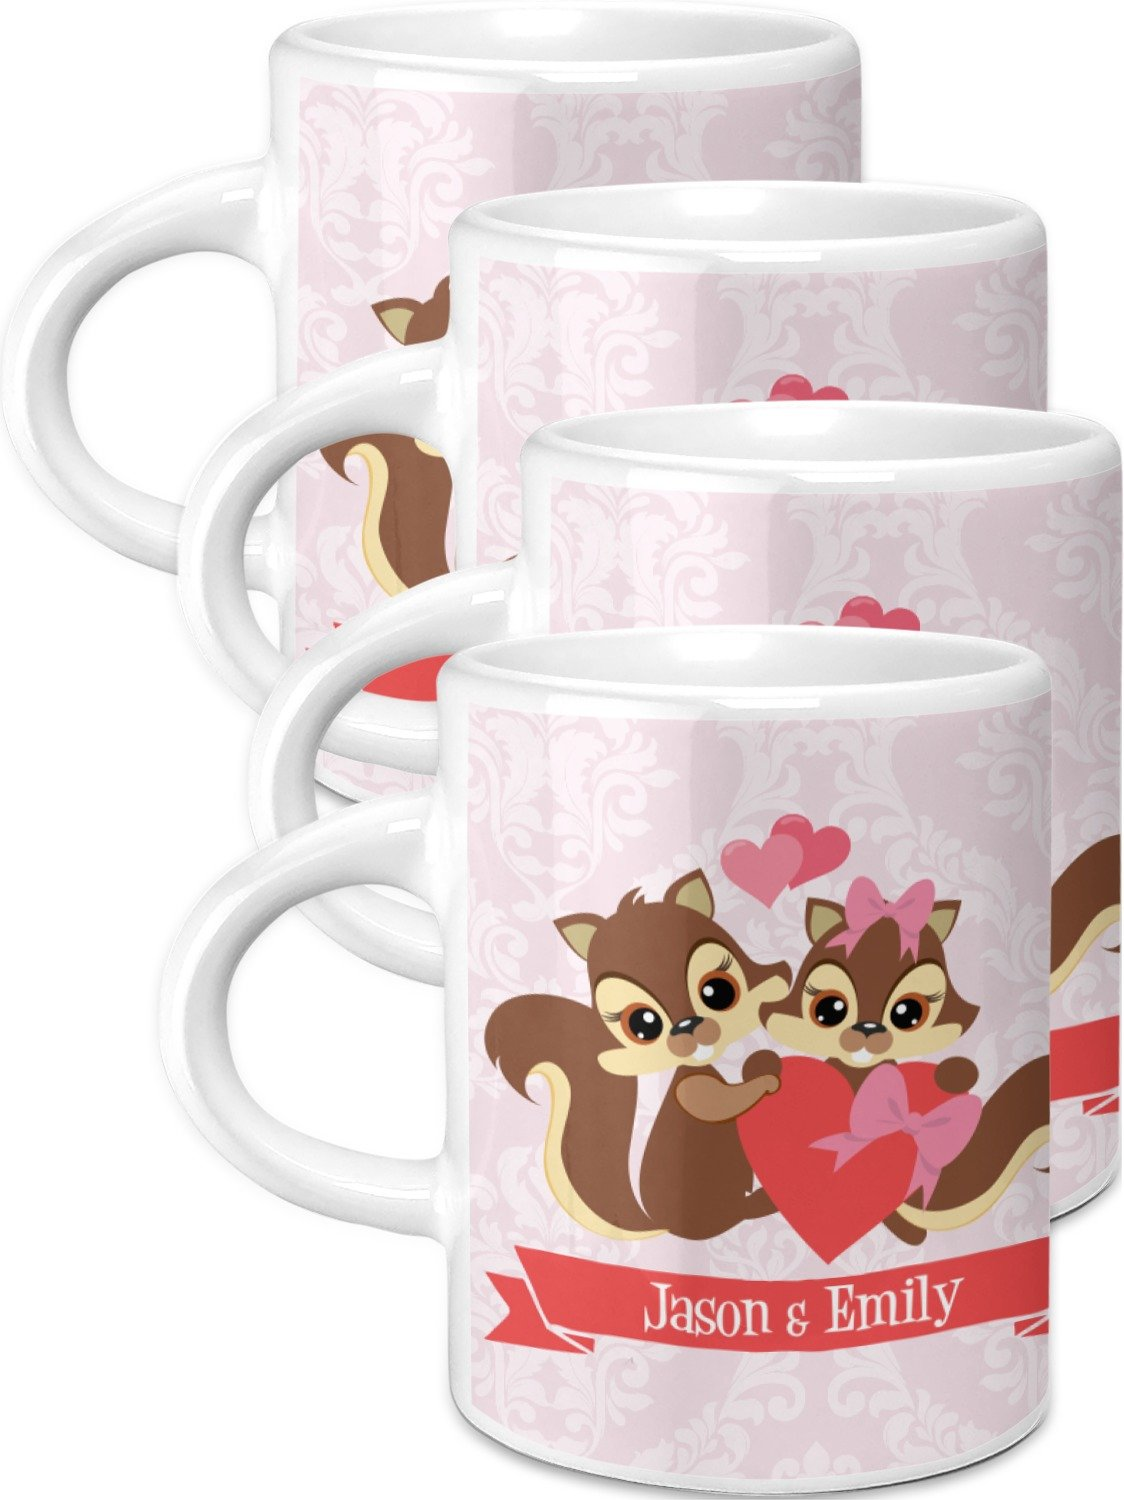 品質保証 Chipmunk CoupleエスプレッソMugs Personalized – セットof セットof 4 4 ( Personalized ) B07652DS9T, J-grows:d6a25ad9 --- a0267596.xsph.ru